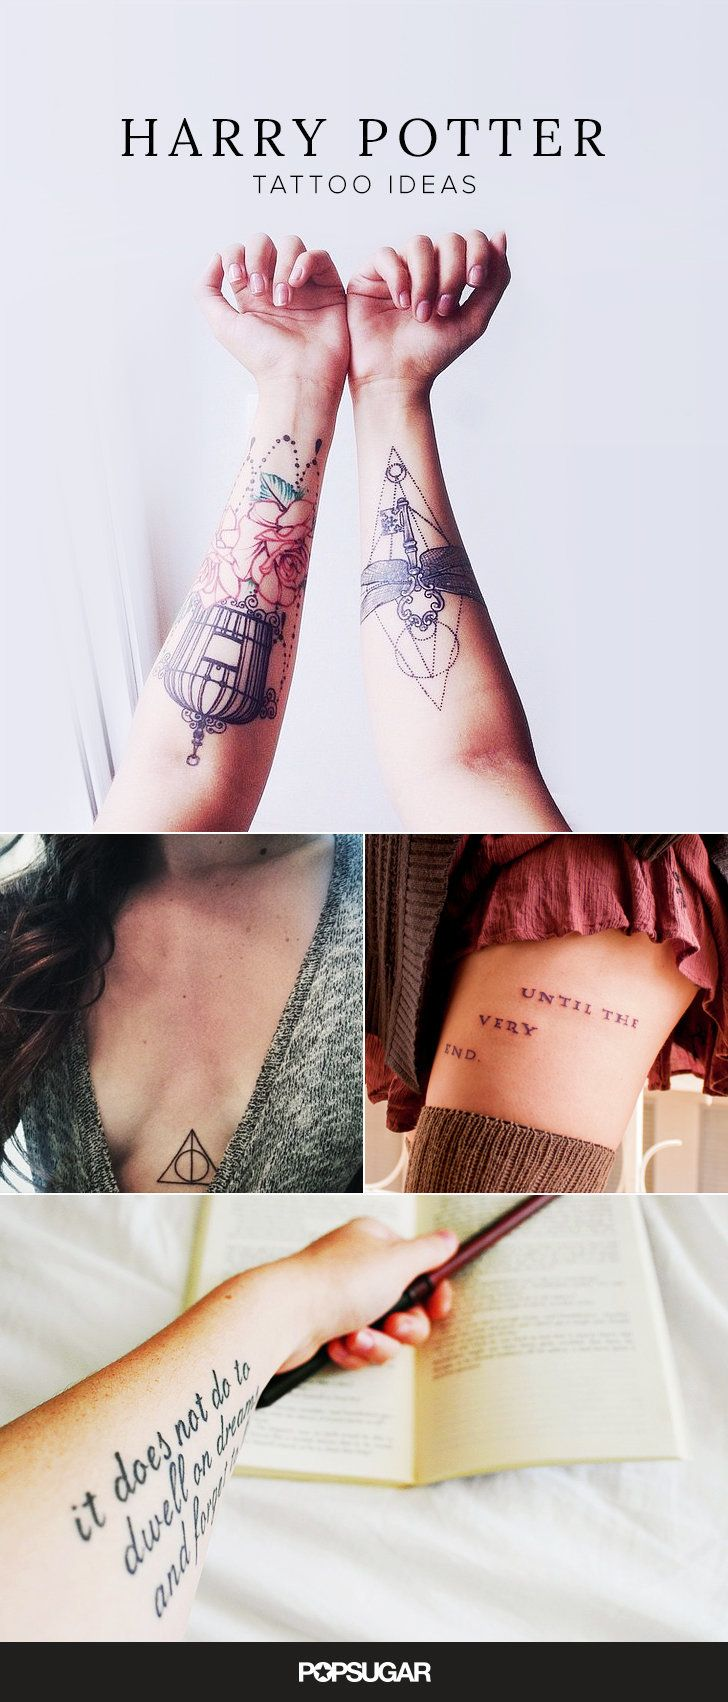 Cool tattoo designs for your hand harry potter tattoos that would make jk rowling proud  tats